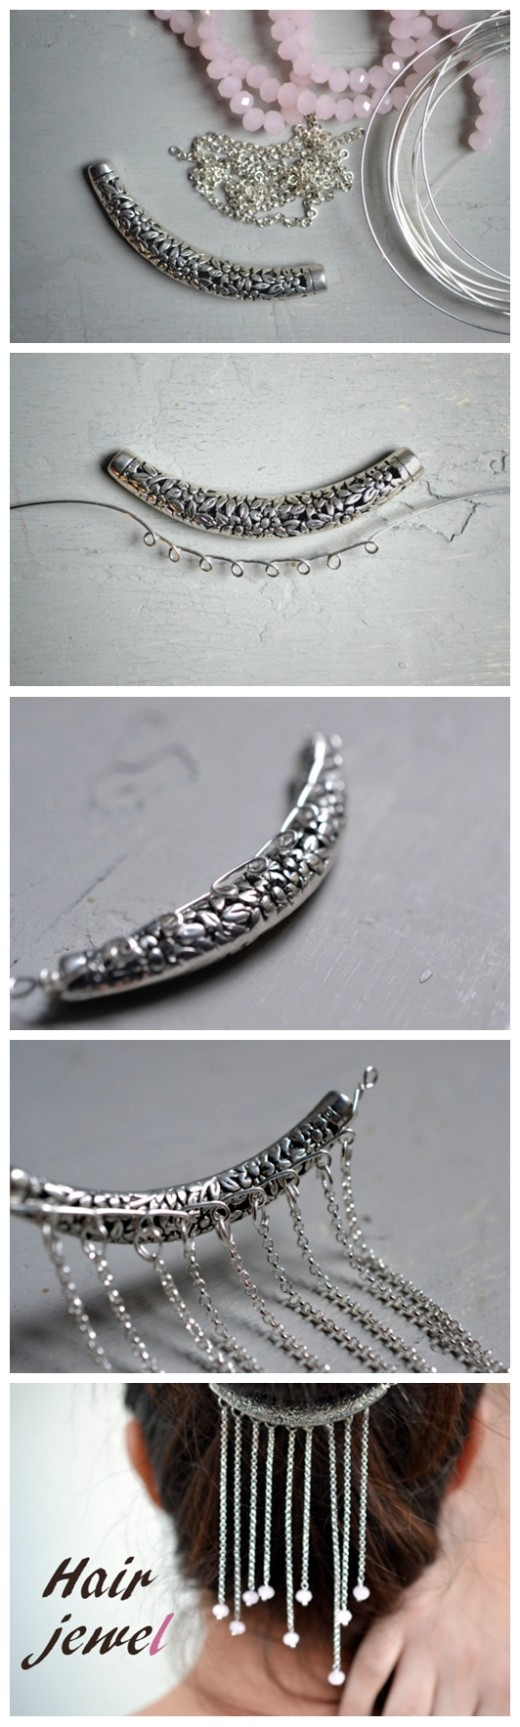 Hair Jewels Diy Project